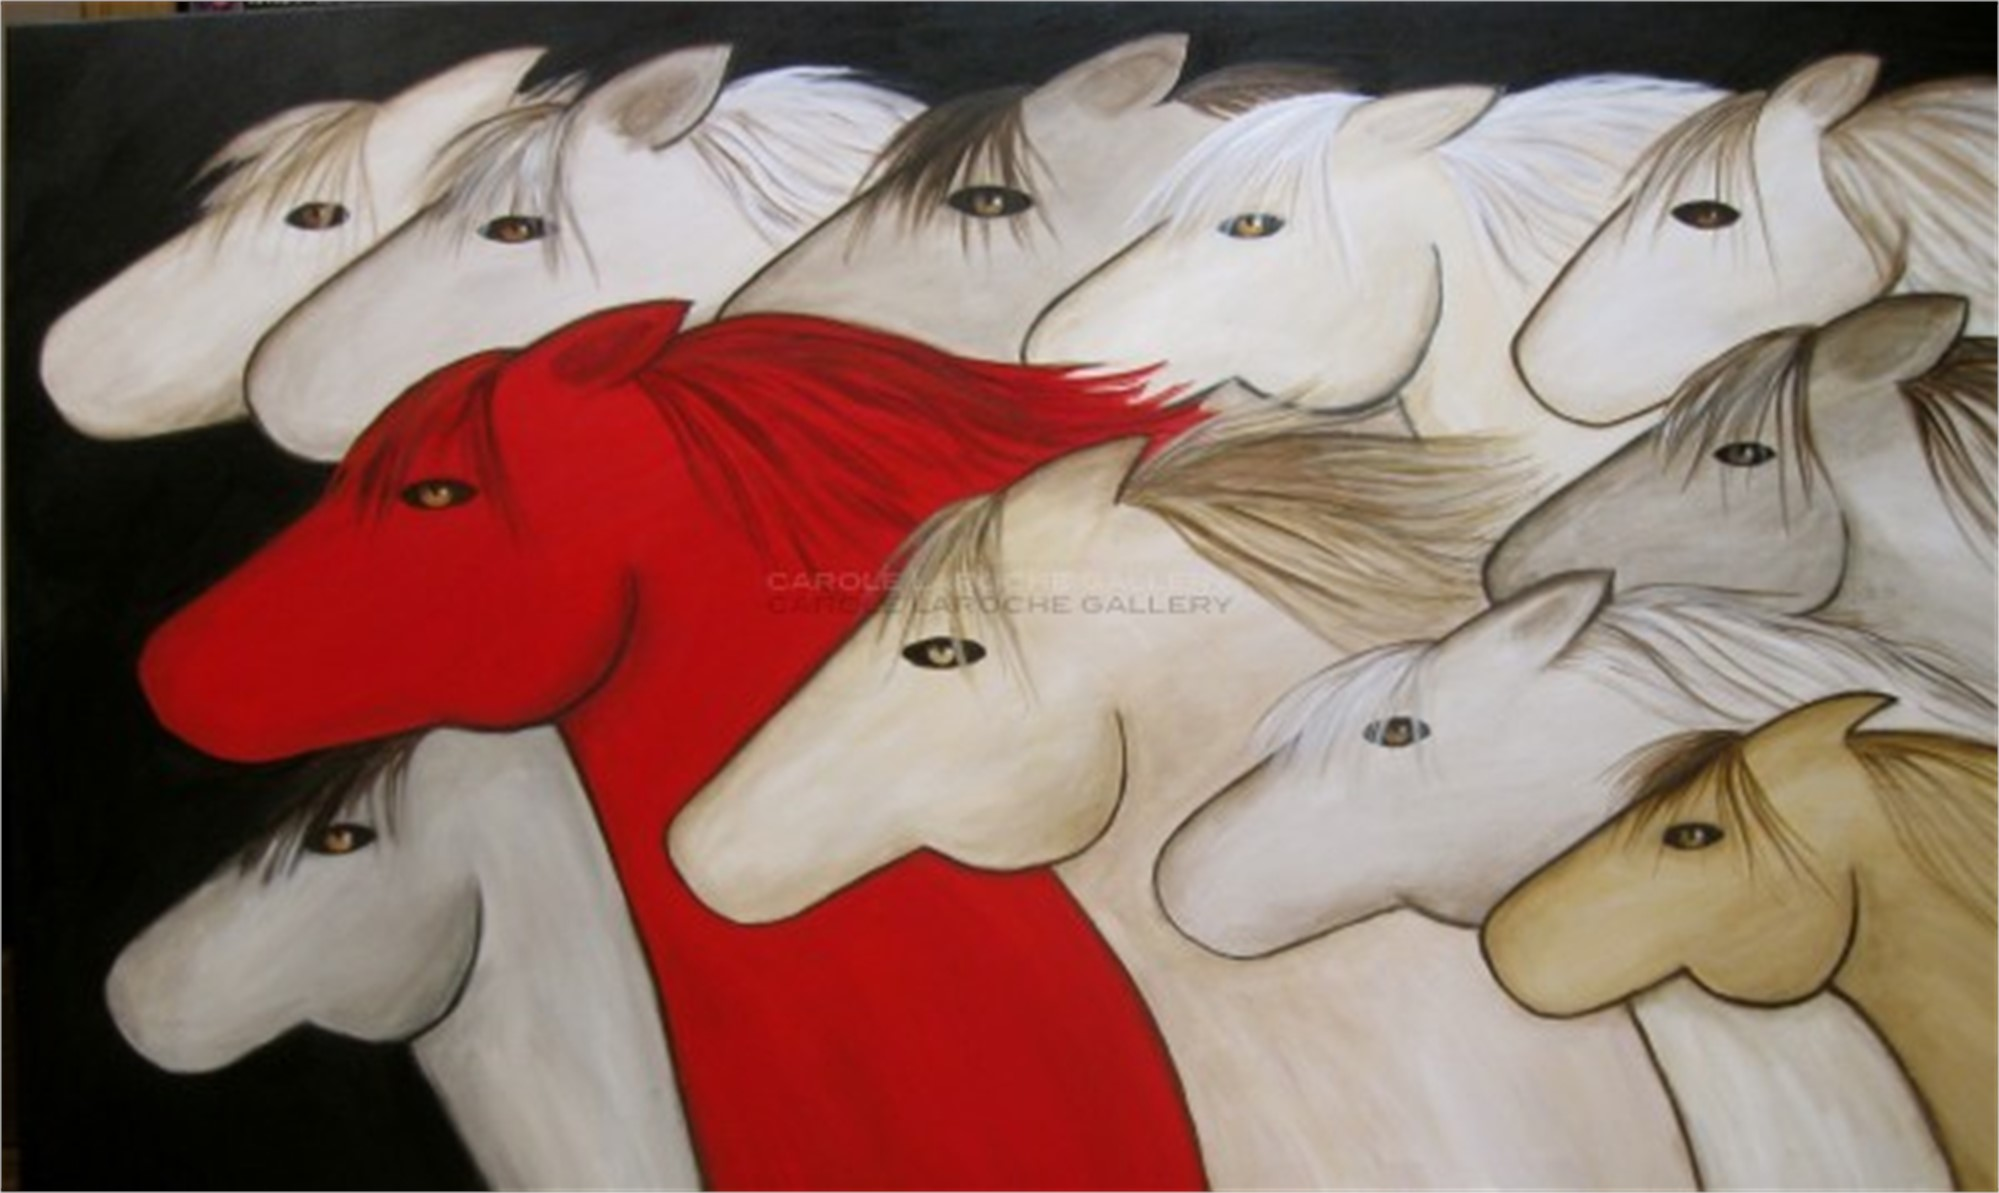 "RED PONY limited edition giclee on canvas LARGE 40""x65"" $3500 or MEDIUM 24""x40"" $2200 by Carole LaRoche"